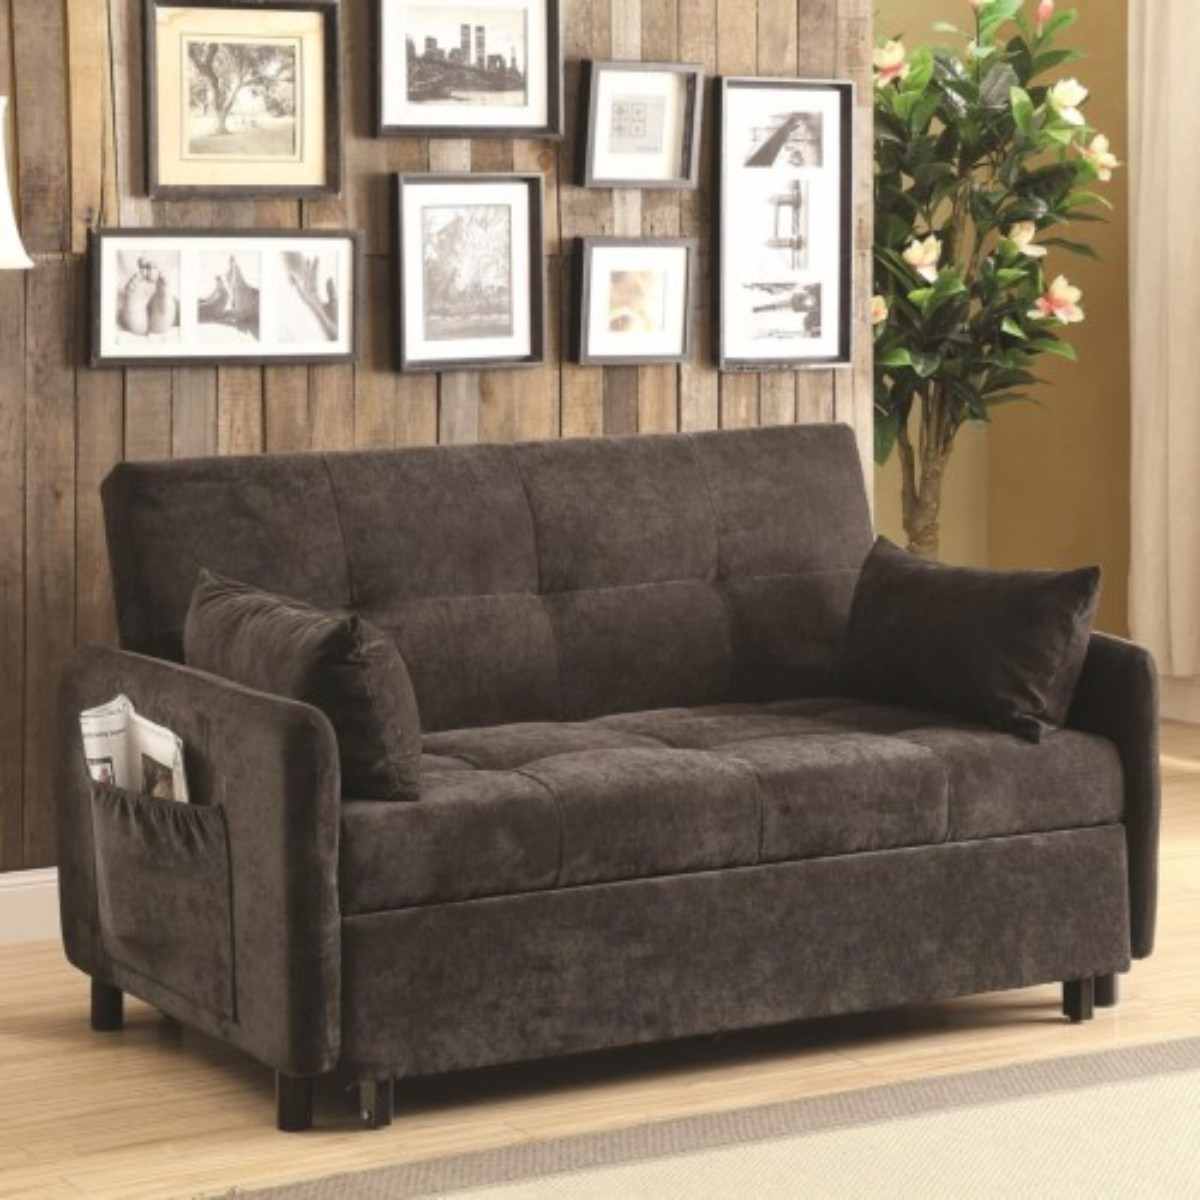 Coaster Sofa Dark Brown Pull Out Bed